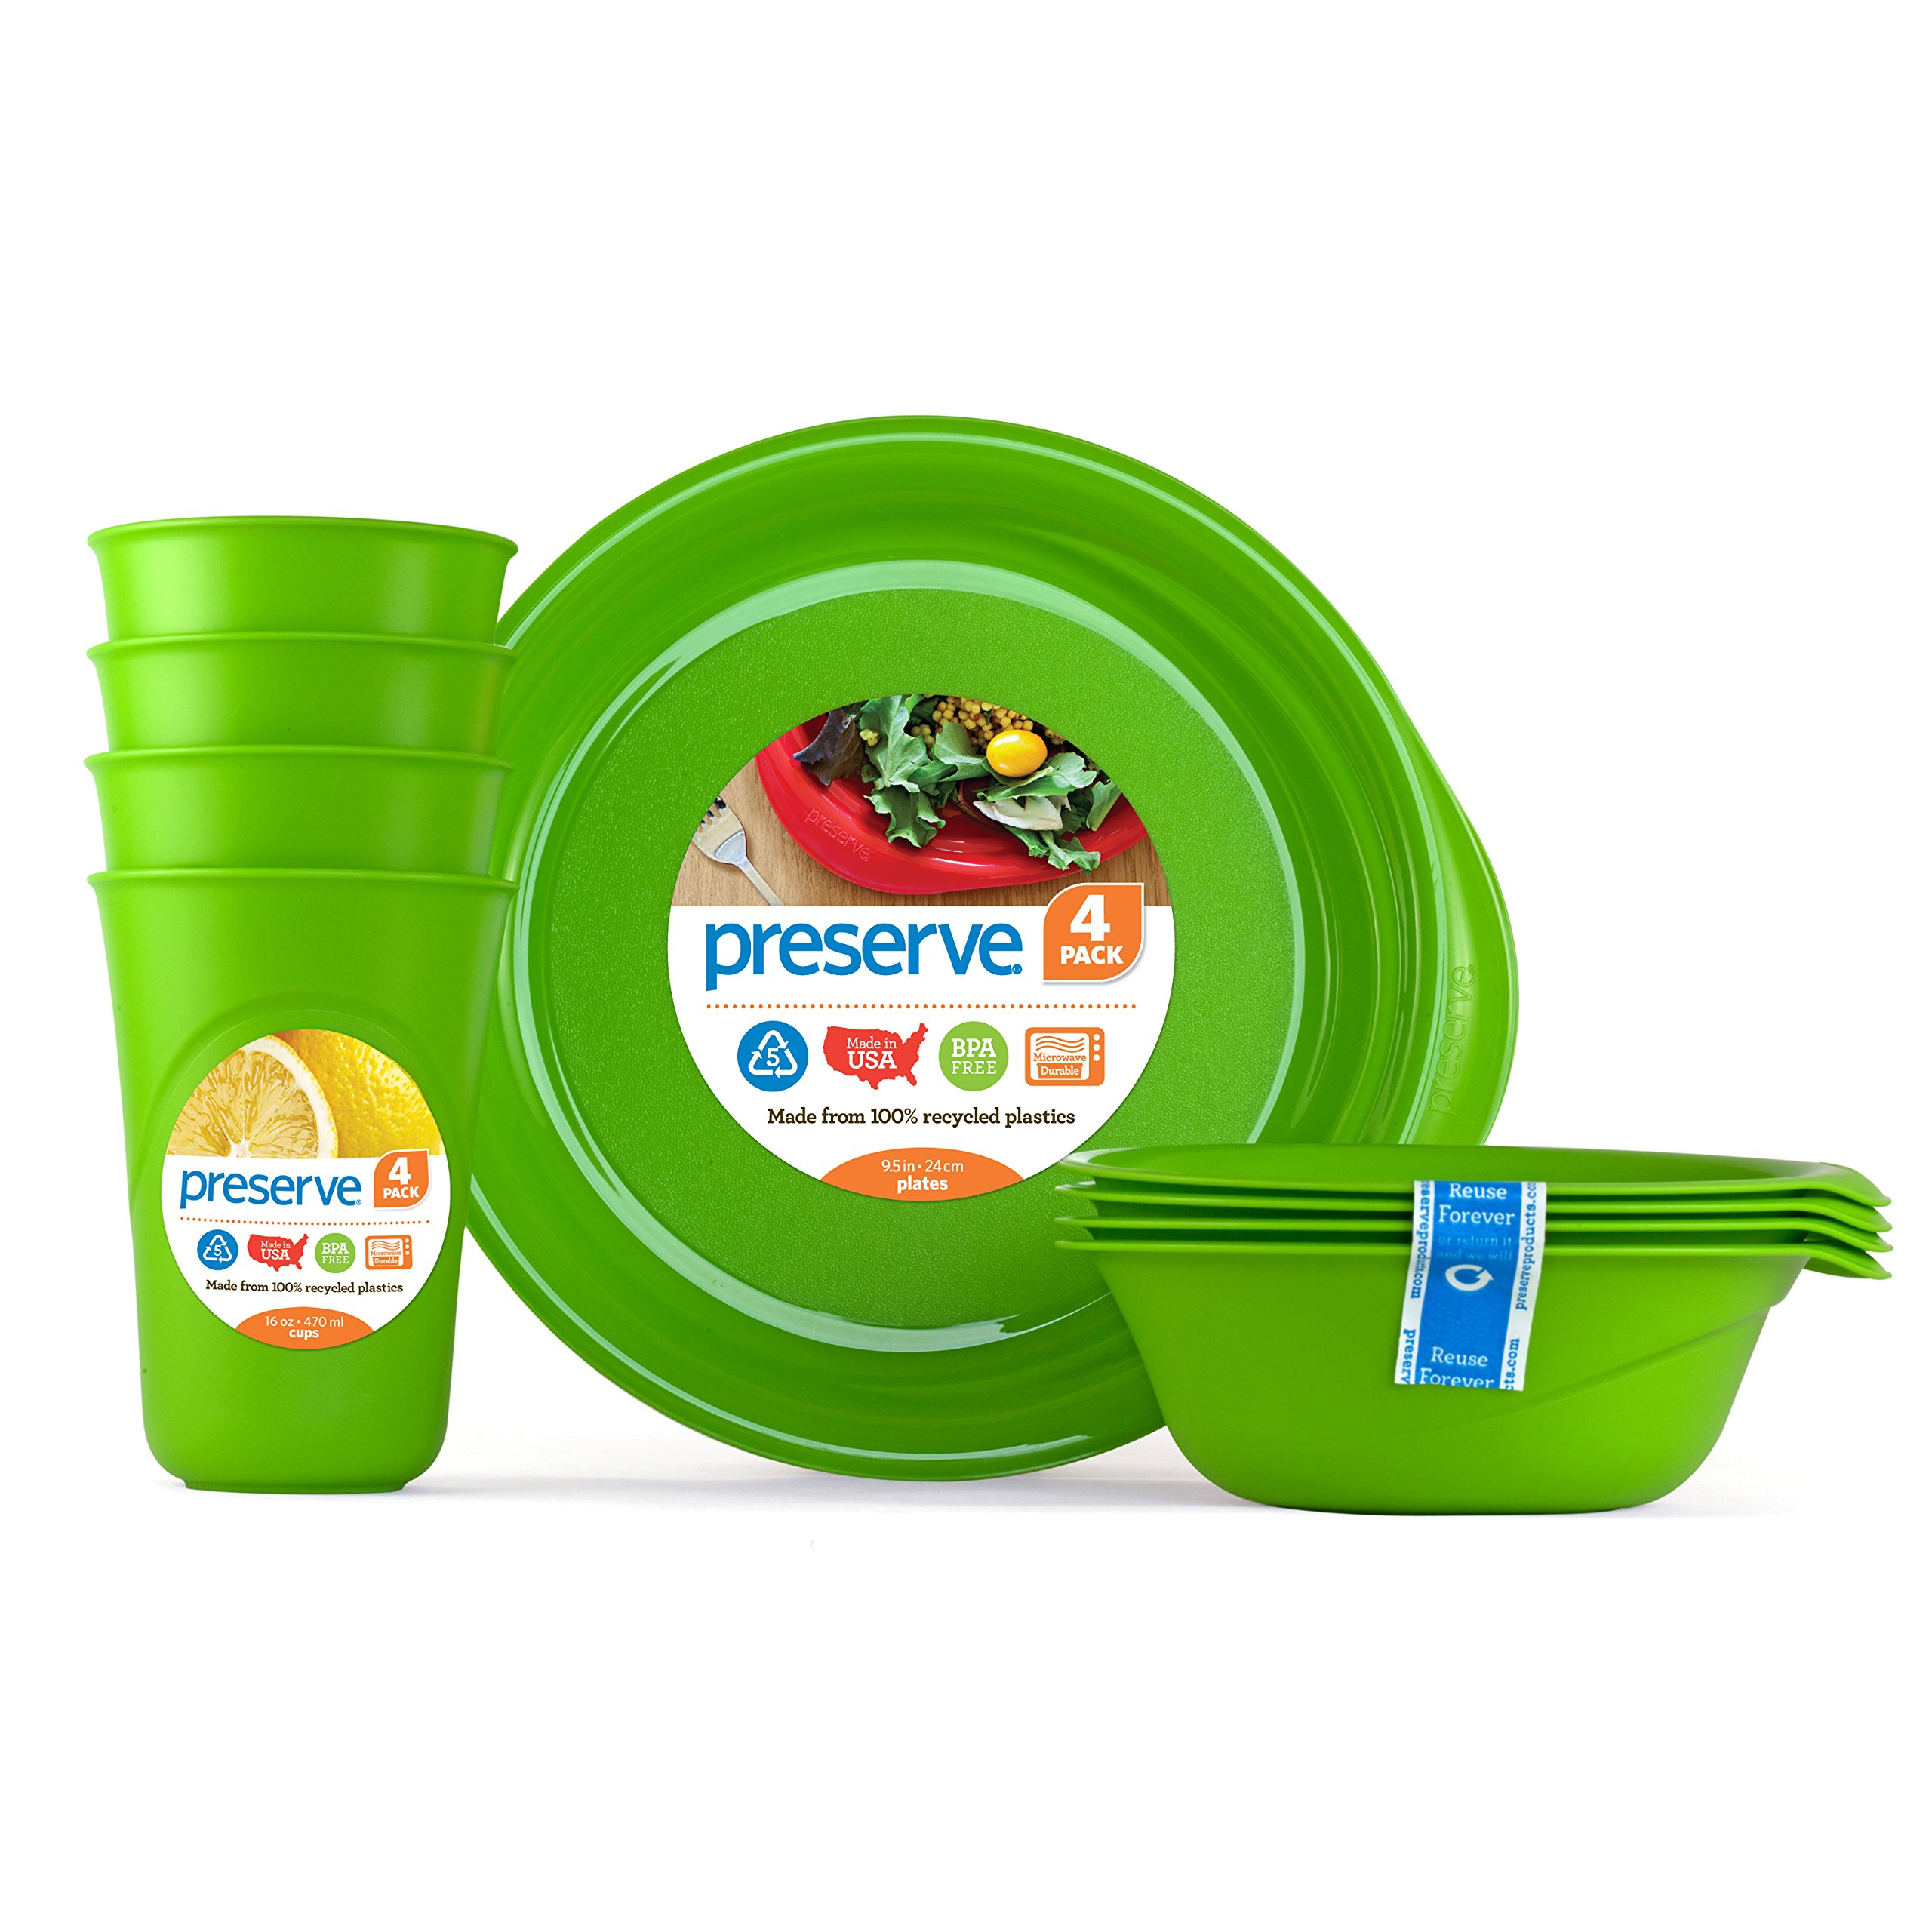 Preserve Everyday Tableware Set: Four Plates, Four Bowls and Four Cups, Apple Green by Preserve